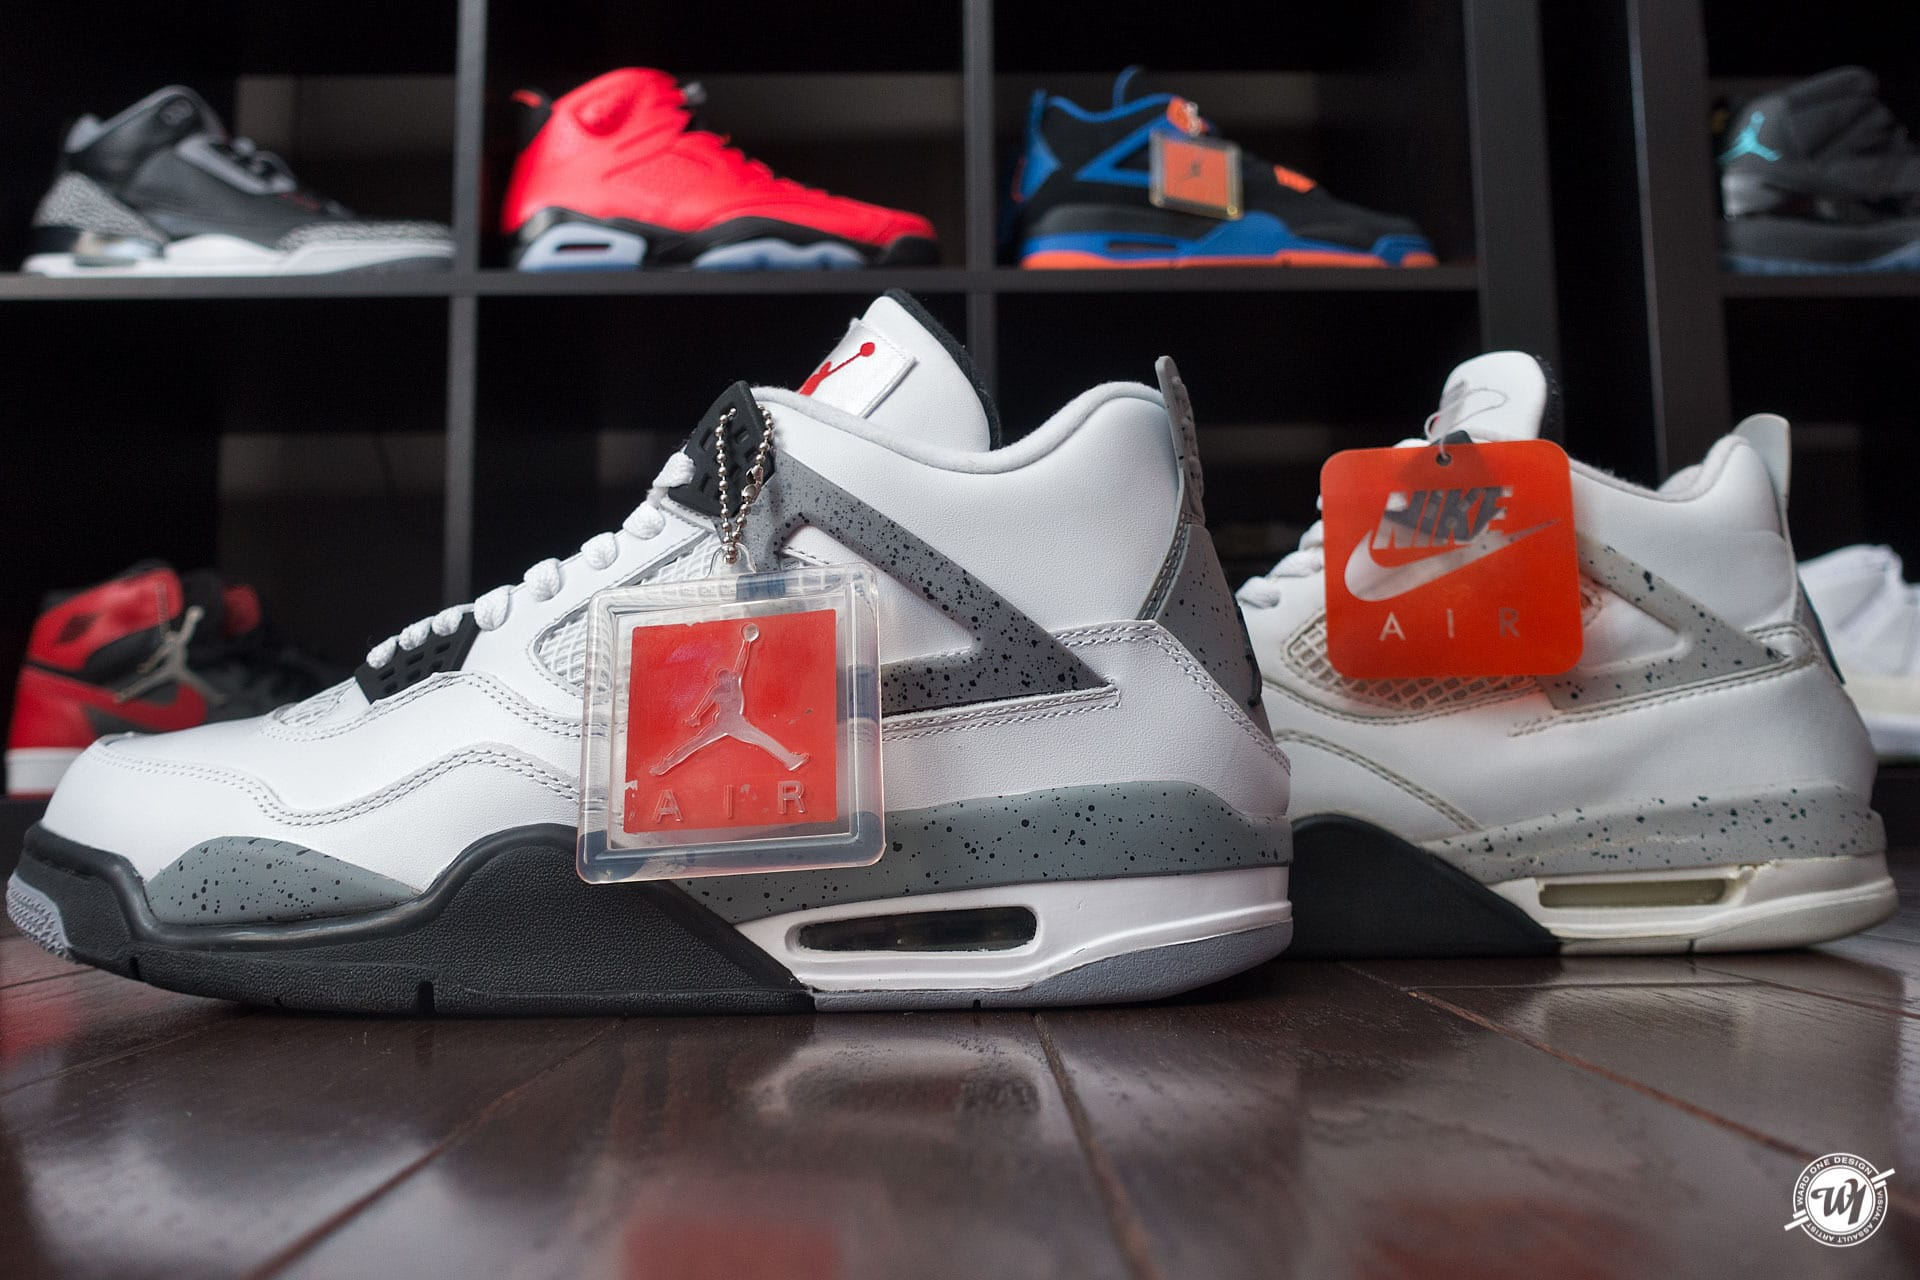 air jordan retro 4s 2012 jeep